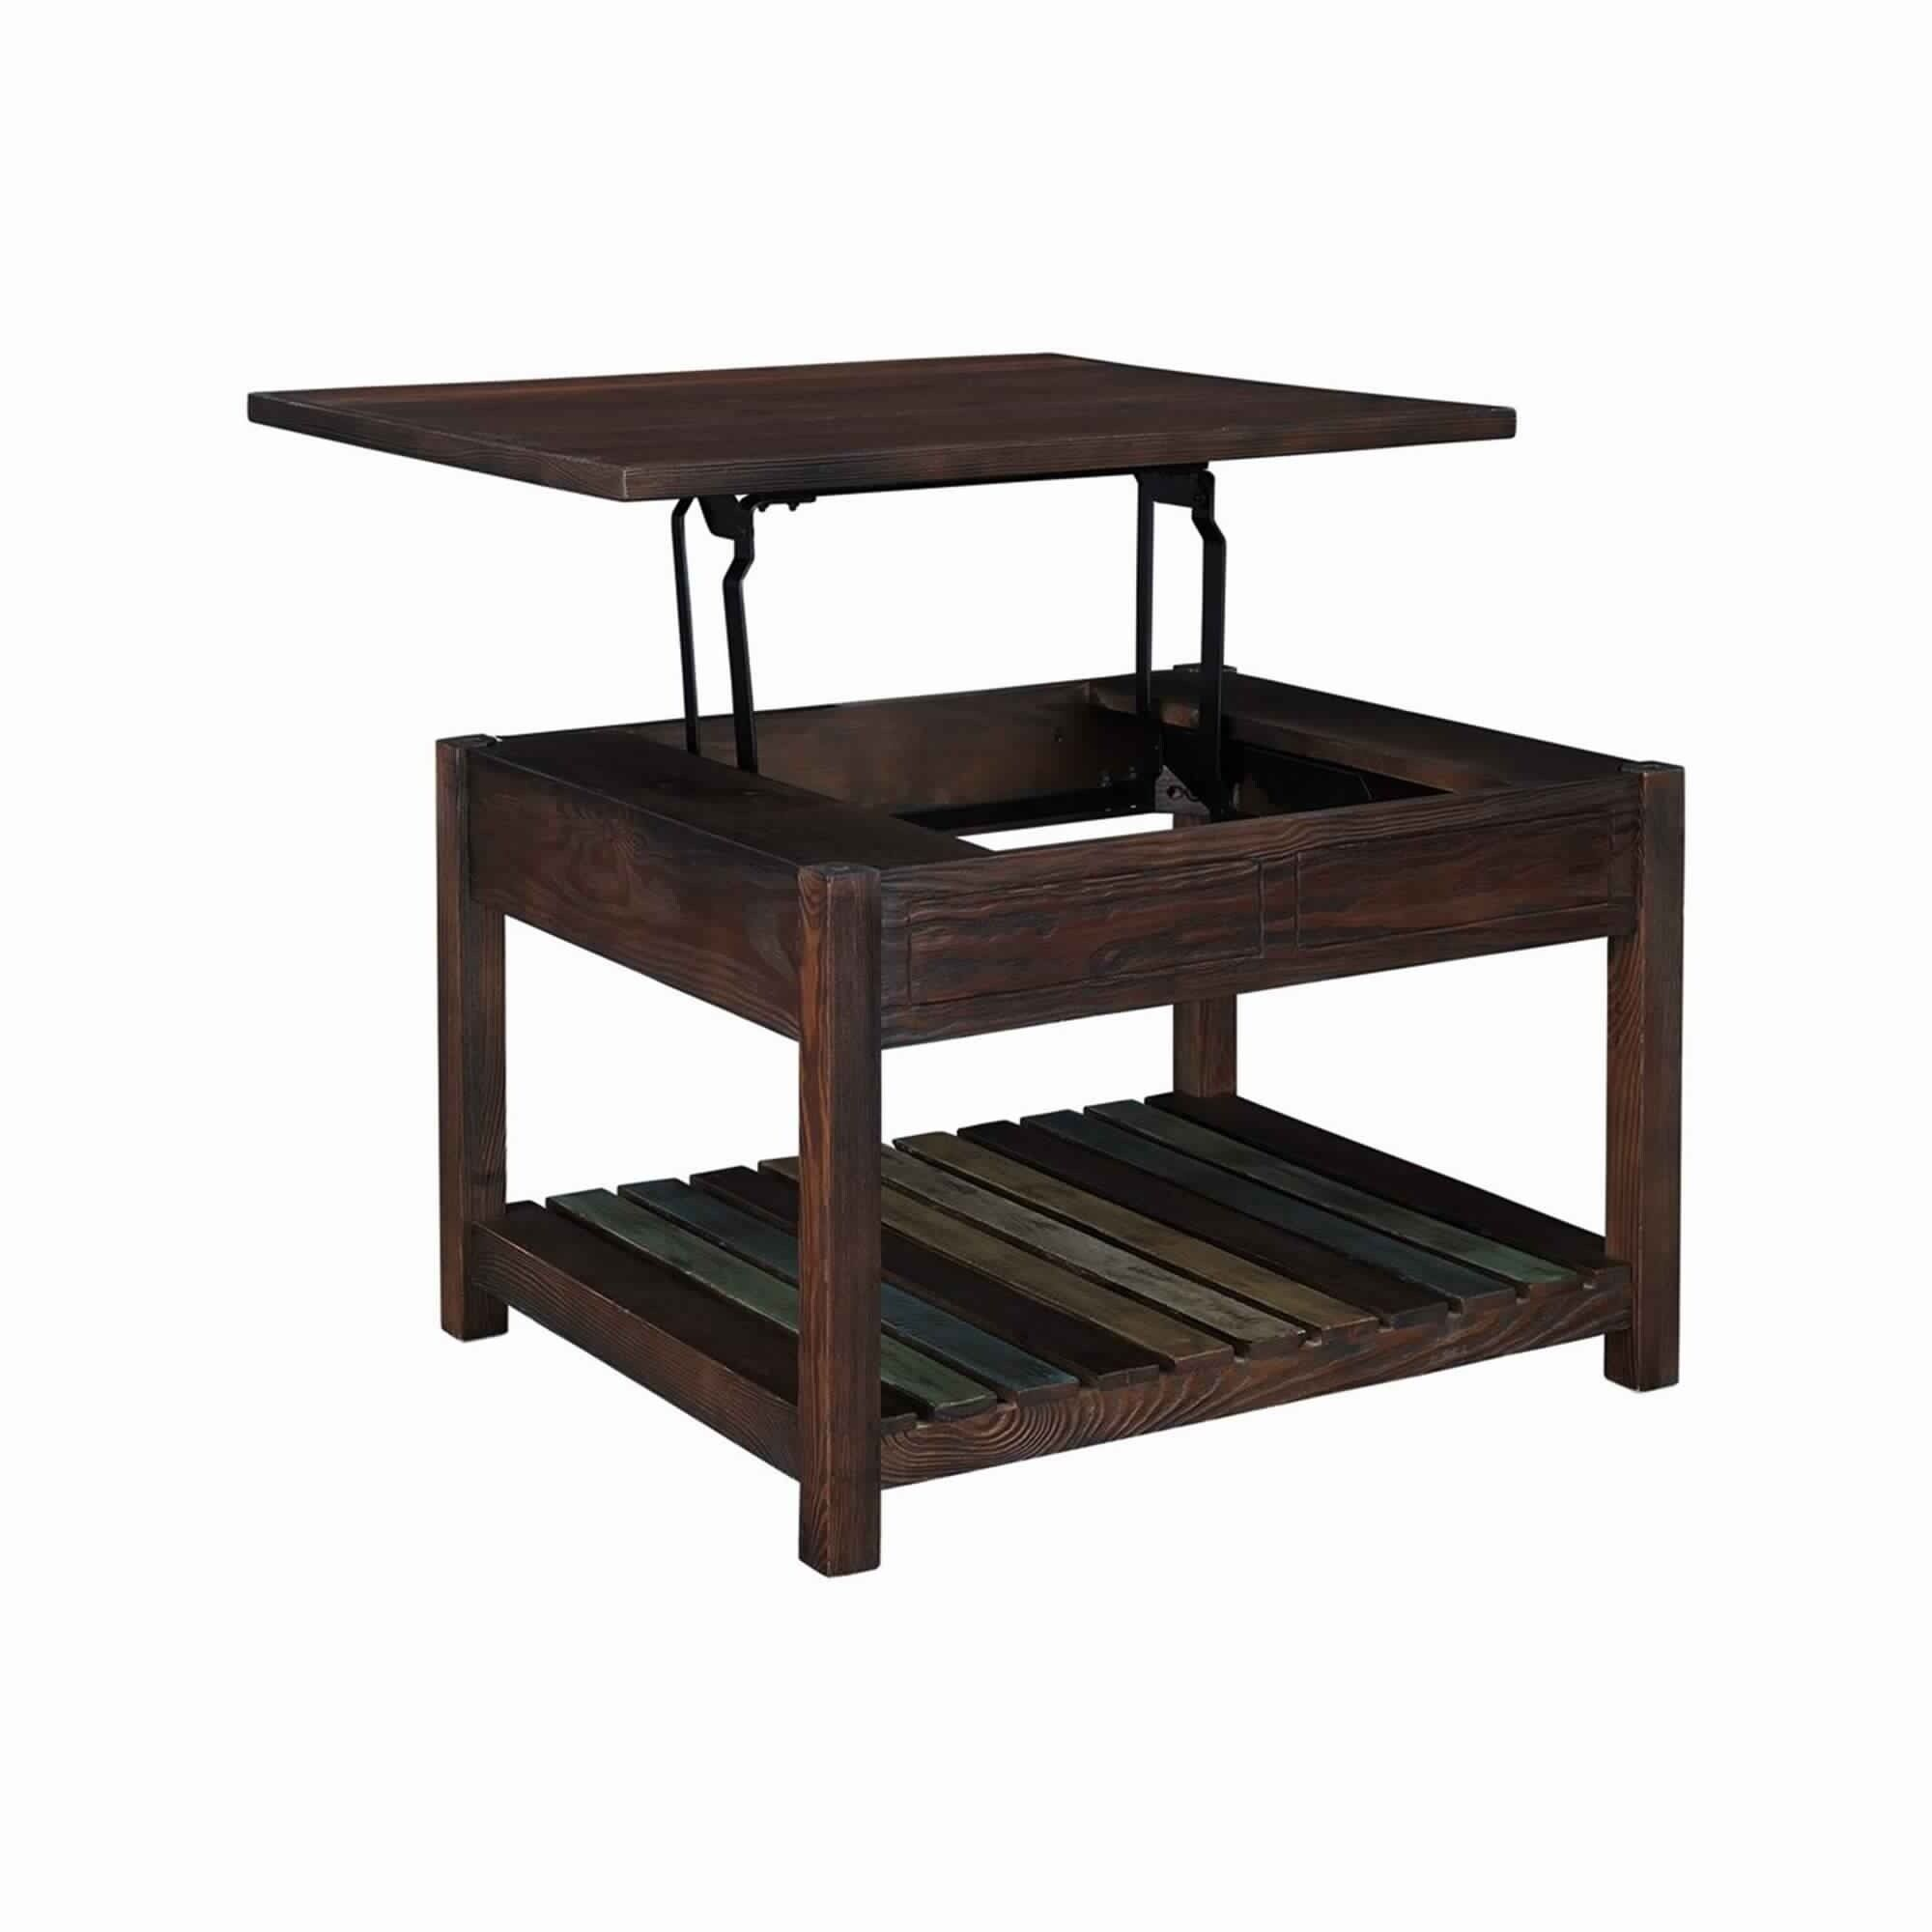 Our Best Living Room Furniture Deals In 2021 Wooden Cocktail Table Coffee Table Brown Lift Top Coffee Table [ 2000 x 2000 Pixel ]